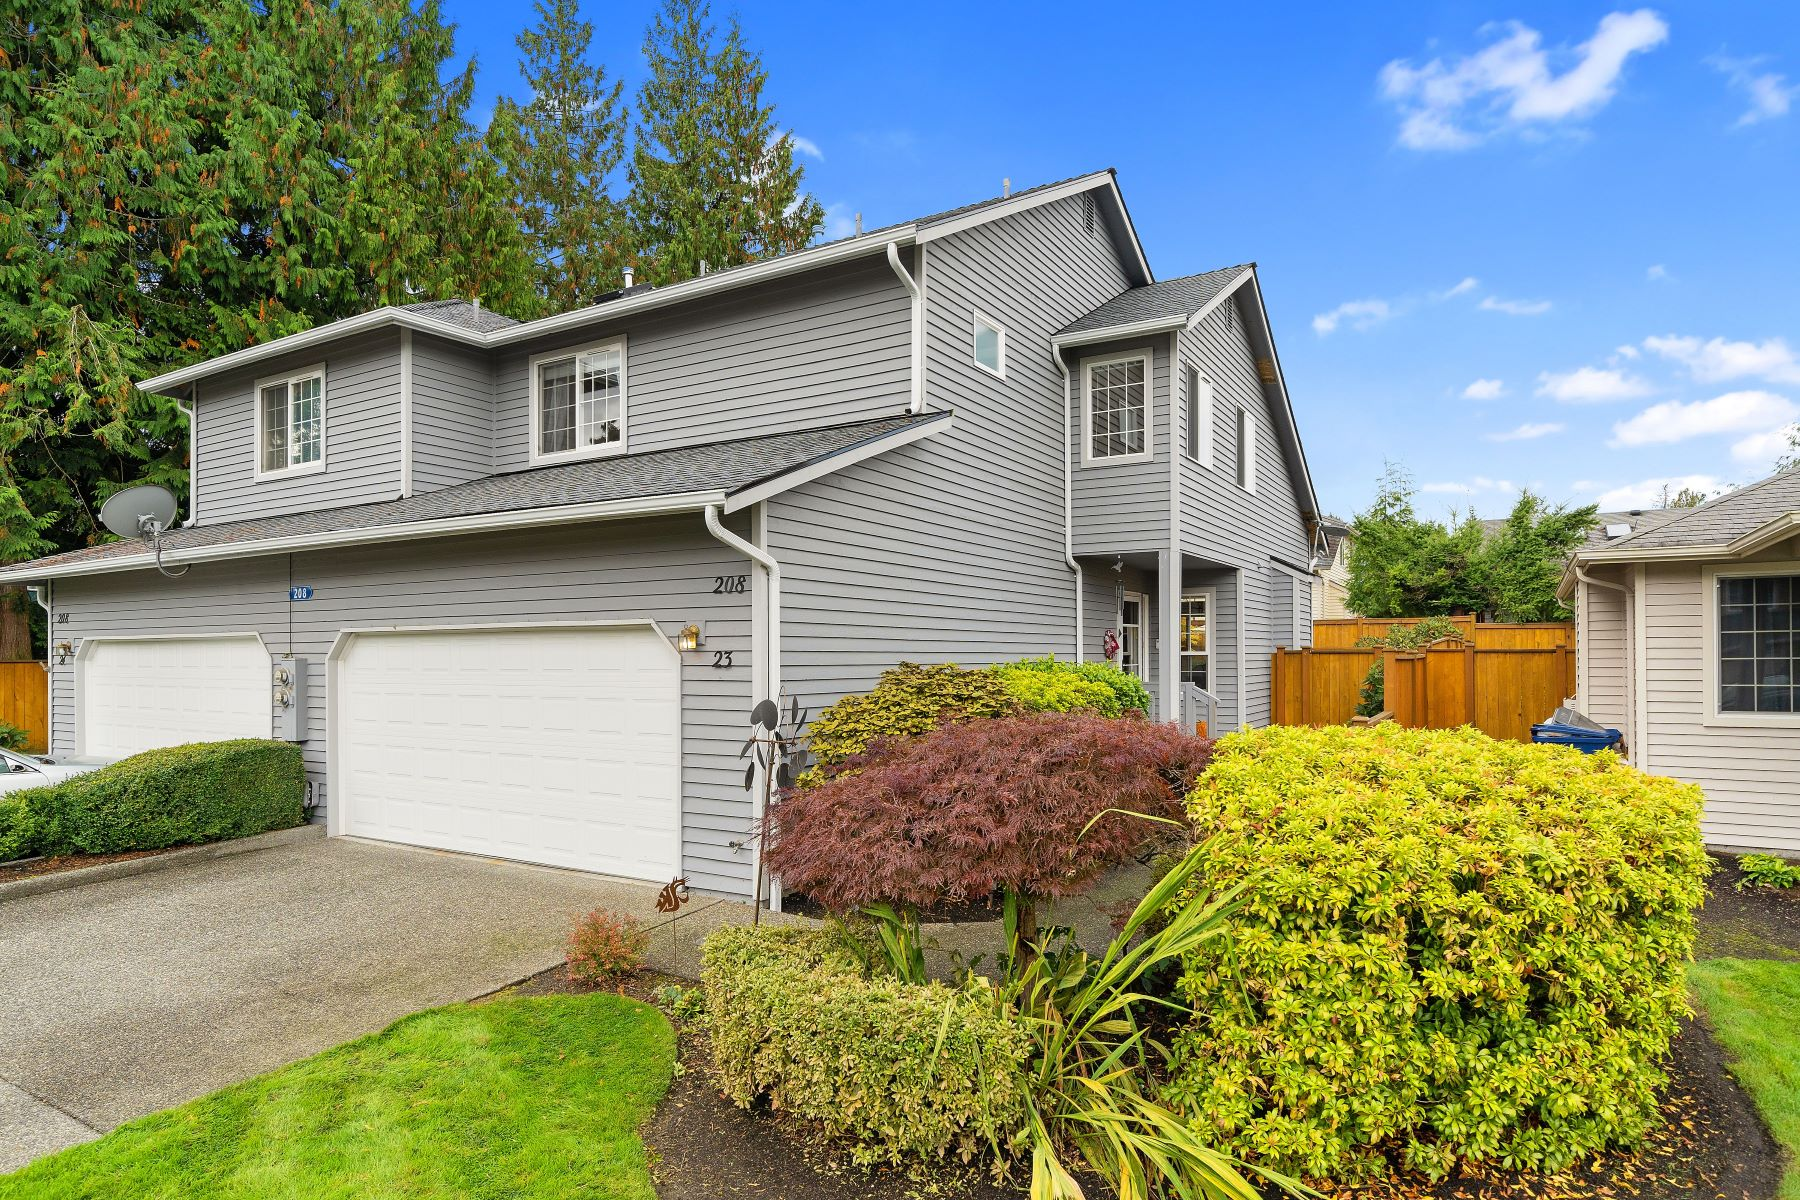 Condominiums for Sale at 208 97th Ave SE #23, Lake Stevens , WA 98258 208 97th Ave SE #23 Lake Stevens, Washington 98258 United States